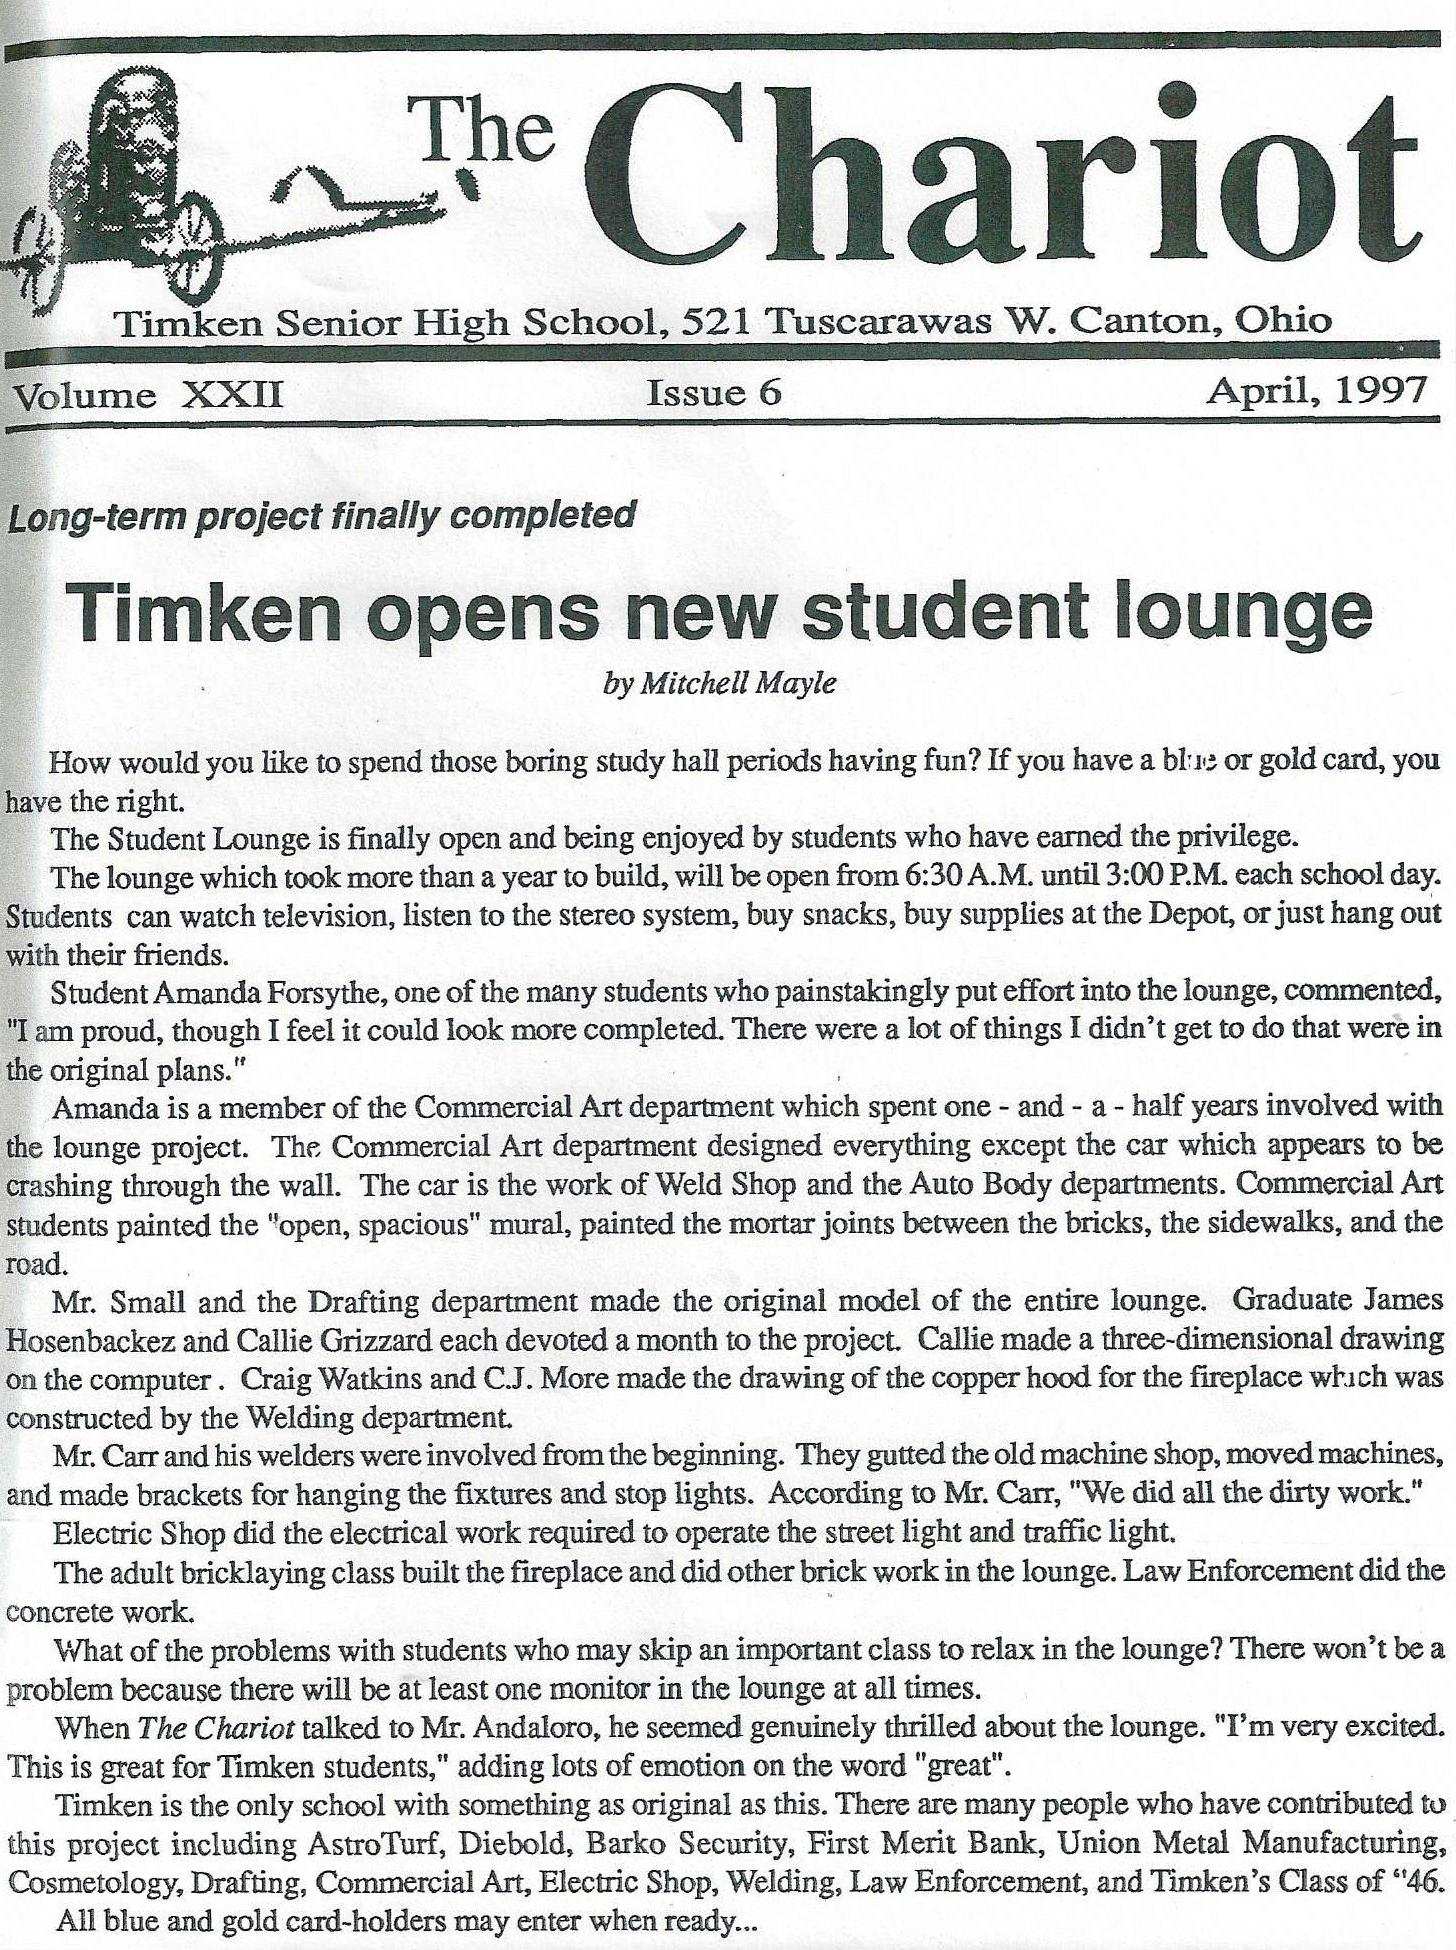 Student Union and Lounge Opened in 1997